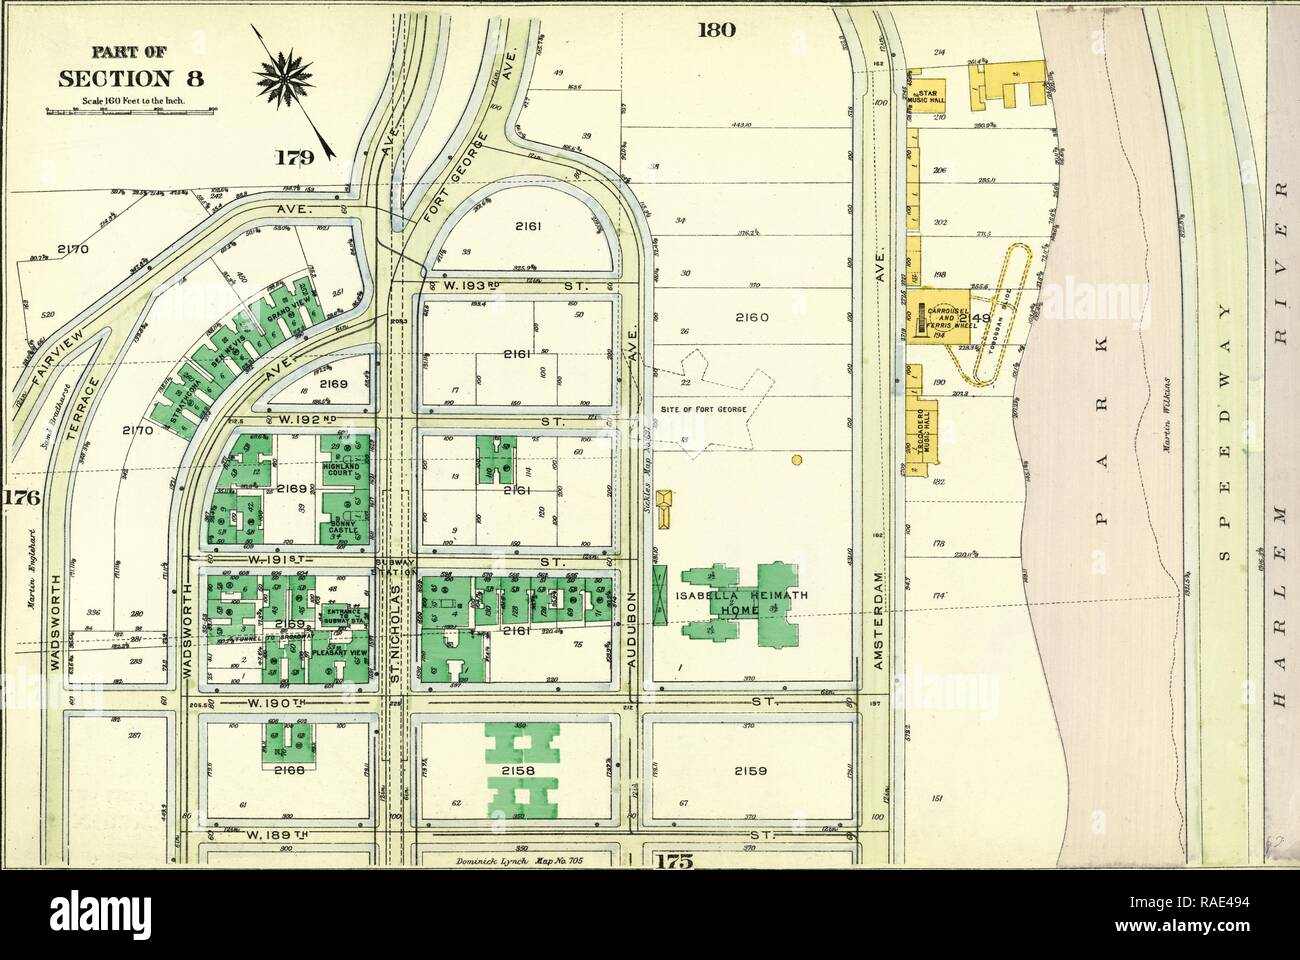 Plate 177: Bounded by Fairview Avenue, Isabella Heimath Home, Amsterdam Avenue Harlem River,W. 189th Street, W. 190th reimagined - Stock Image